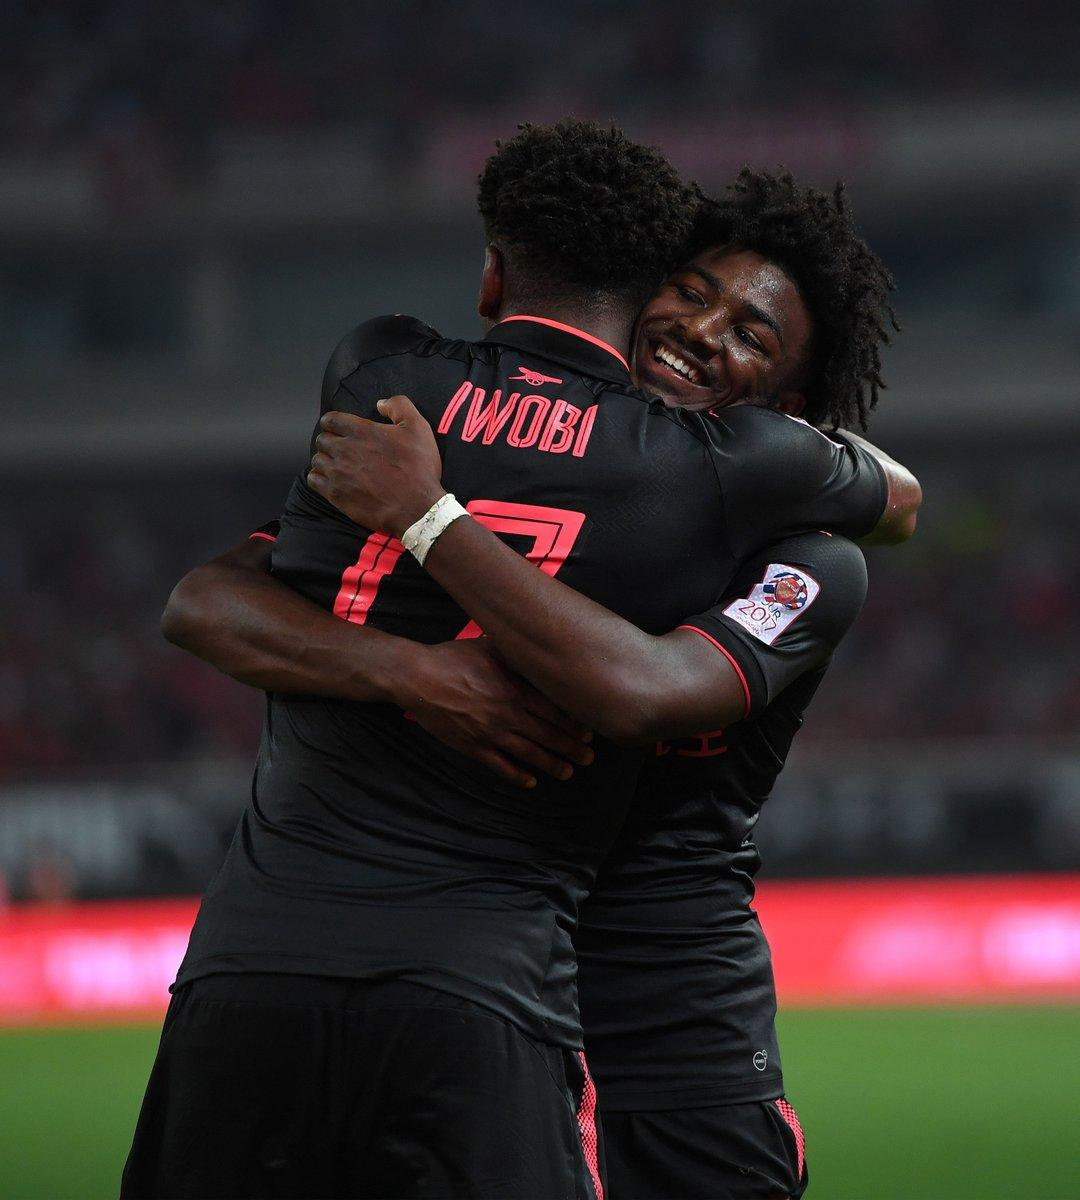 Arsenal Fans: Iwobi The Best Vs Bayern, Deserves More Playing Time